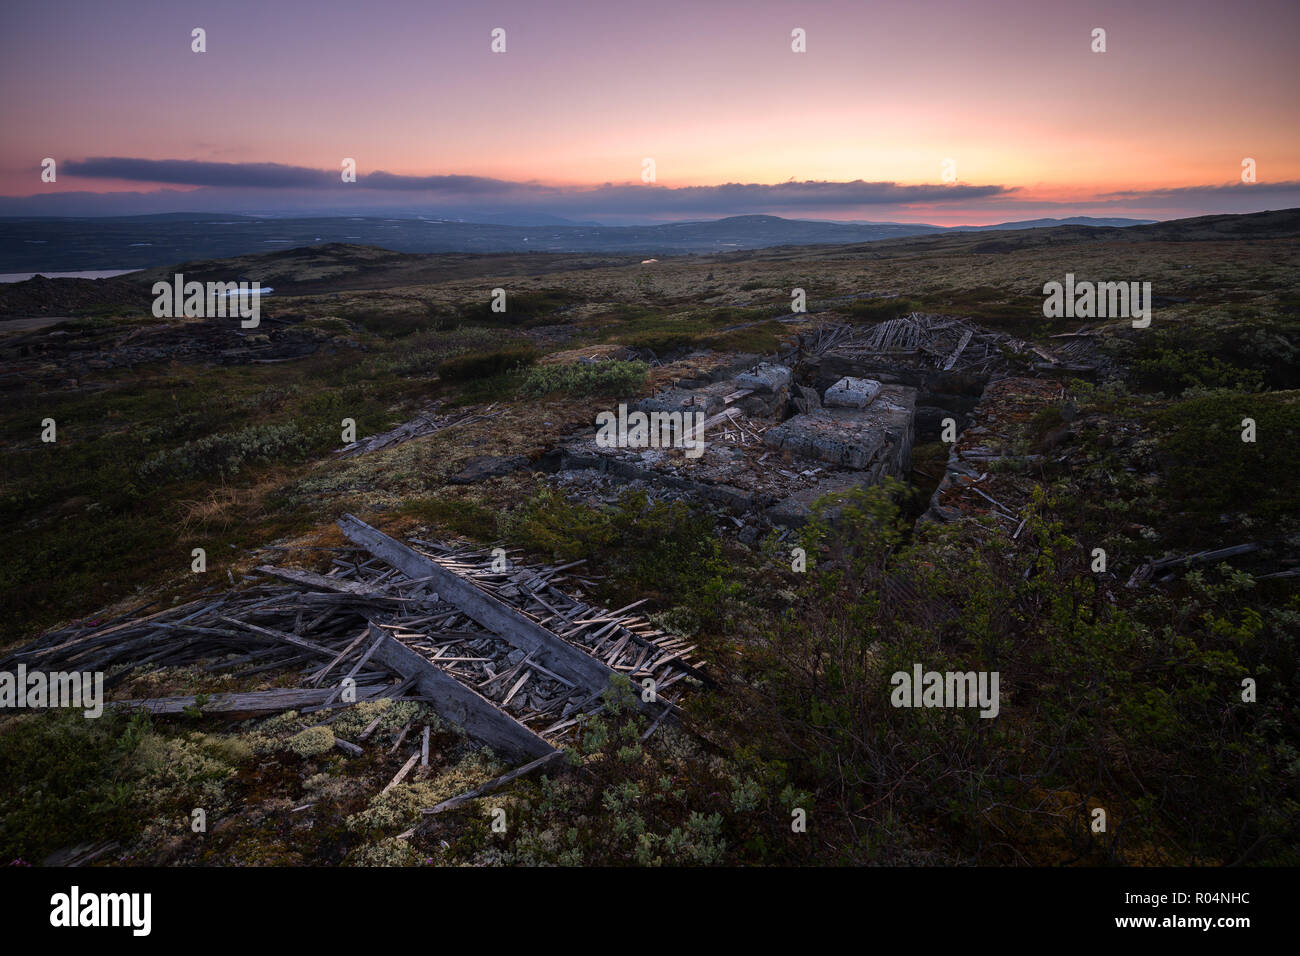 Ruined building of old copper mine in Nordgruvefeltet area near Glamos, Norway. - Stock Image